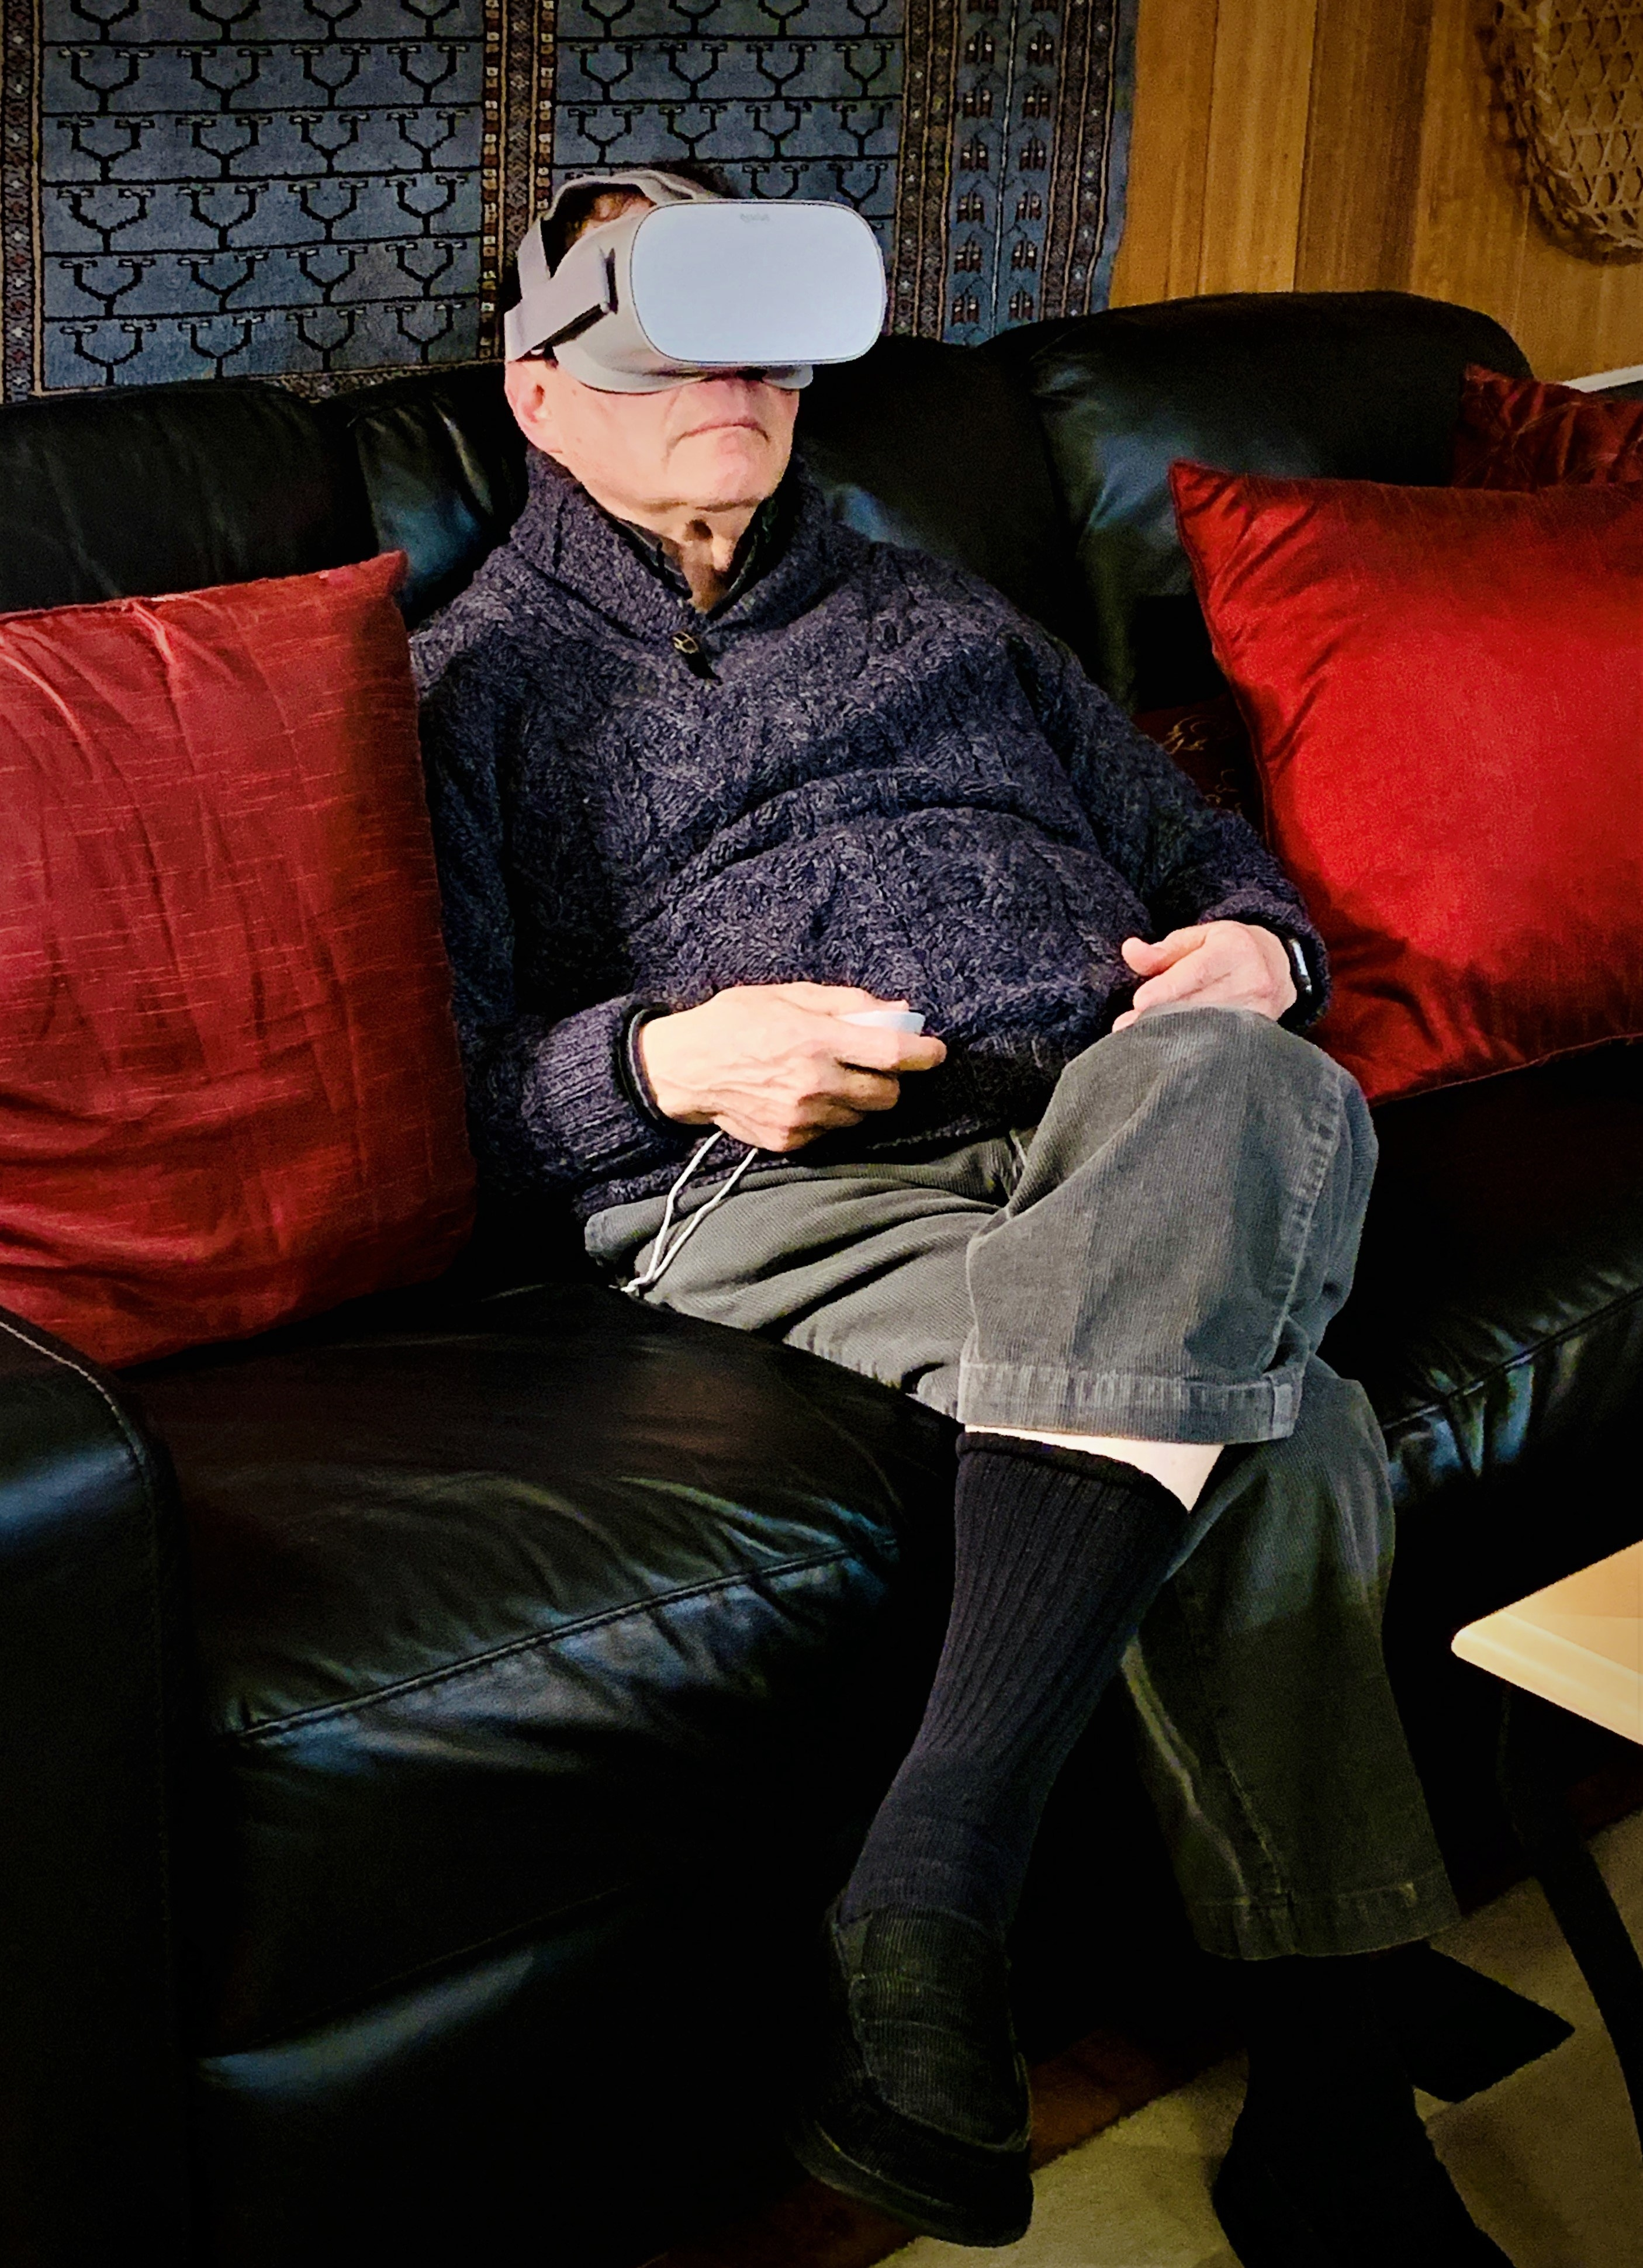 An older man wearing VR glasses sits on a couch